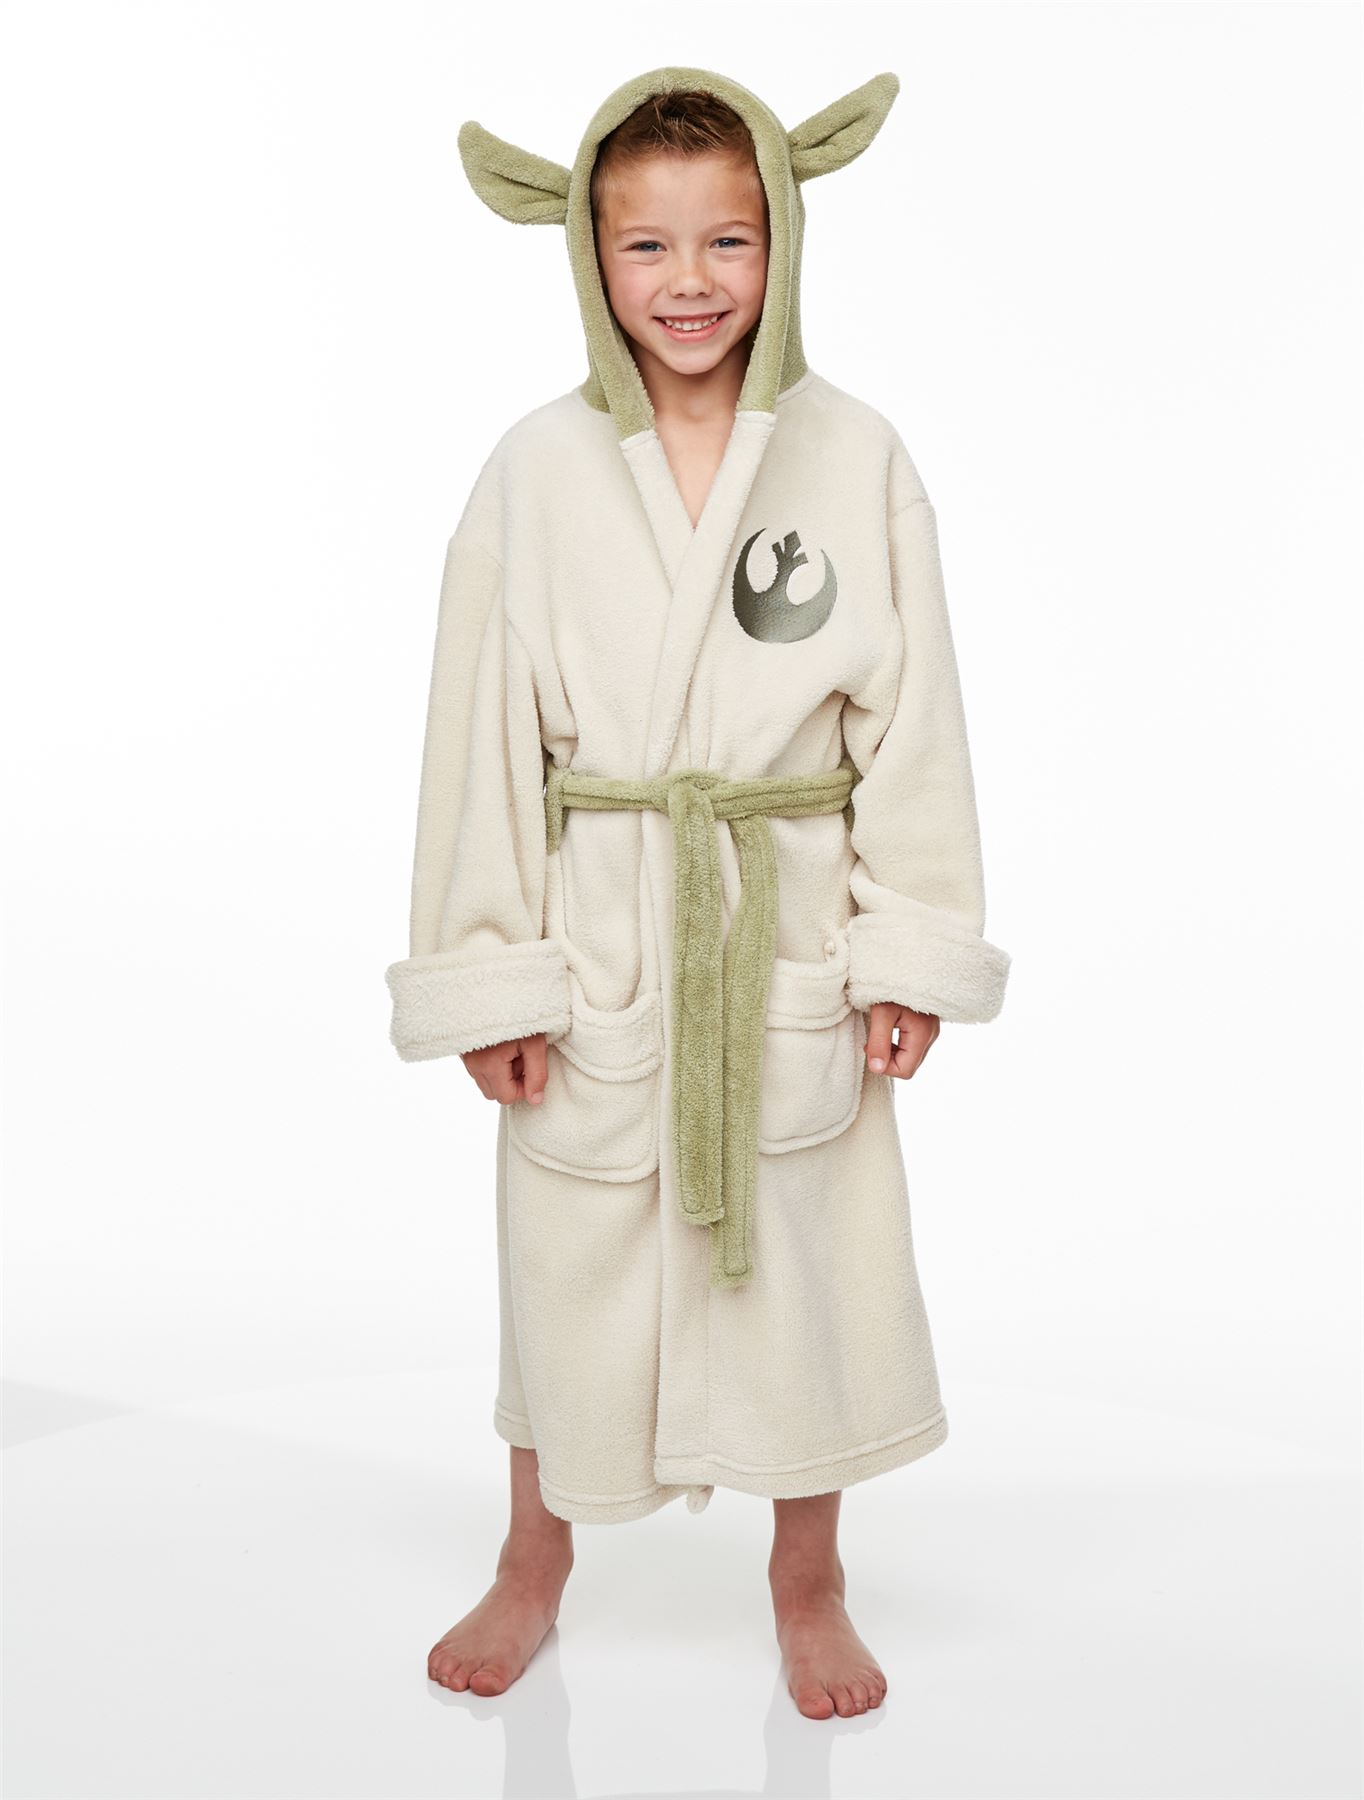 officiel enfants star wars jedi yoda polaire peluche peignoir gar on fille ebay. Black Bedroom Furniture Sets. Home Design Ideas